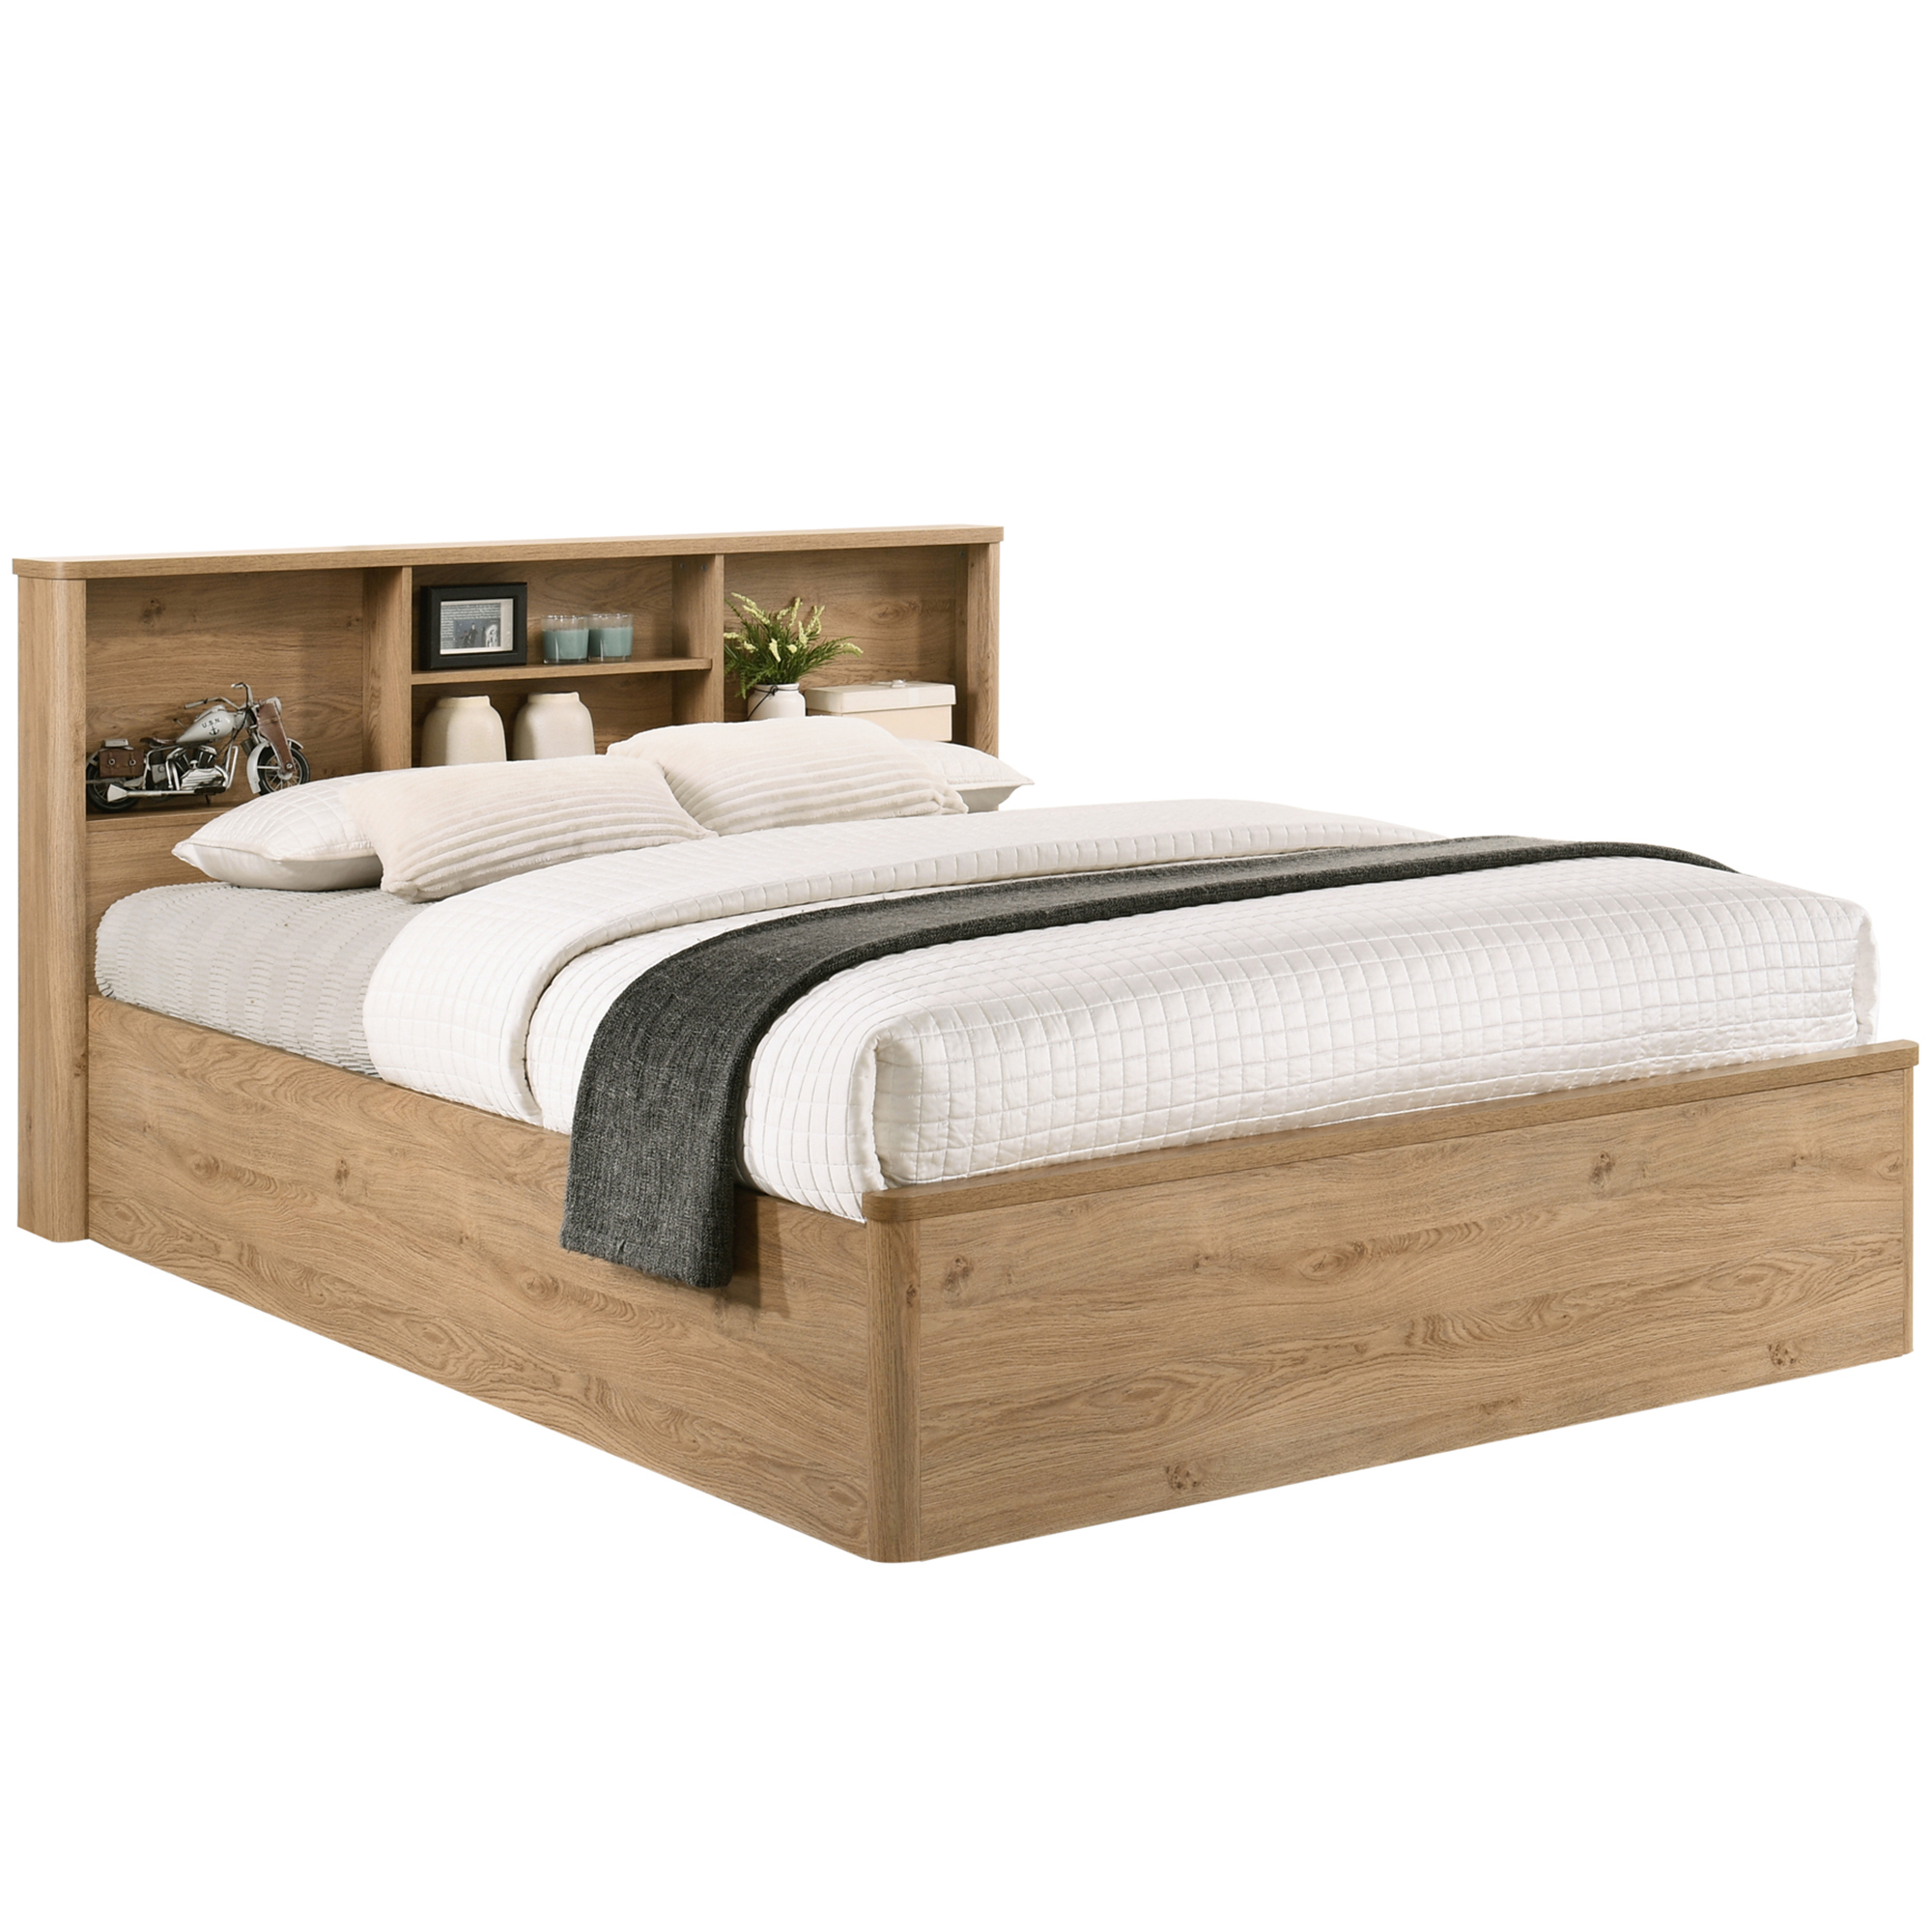 New Natural Anderson Queen Bed With Bookcase Headboard Kodu Beds Ebay